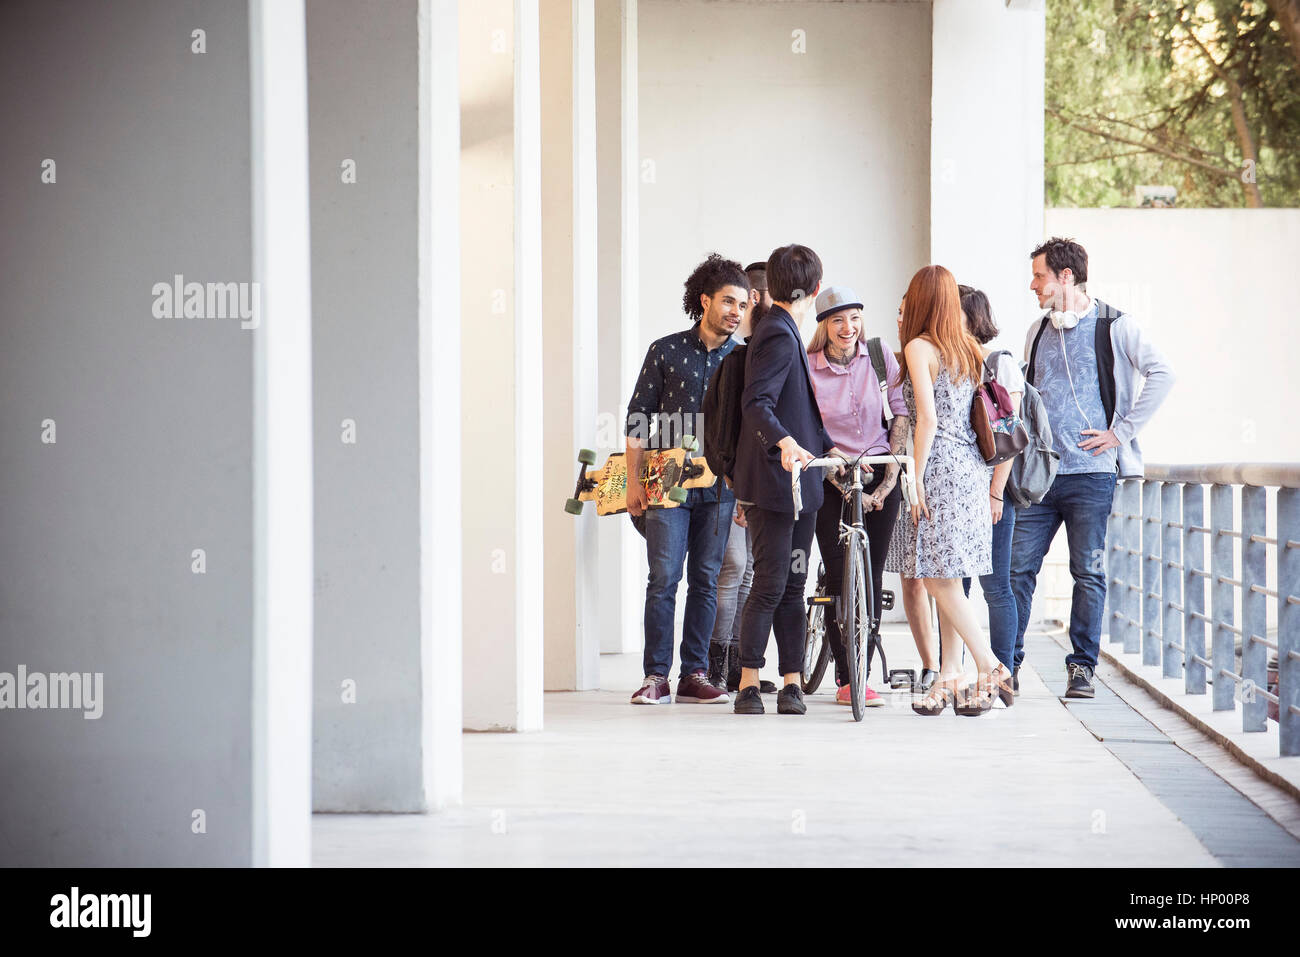 Group of college students chatting together after class - Stock Image